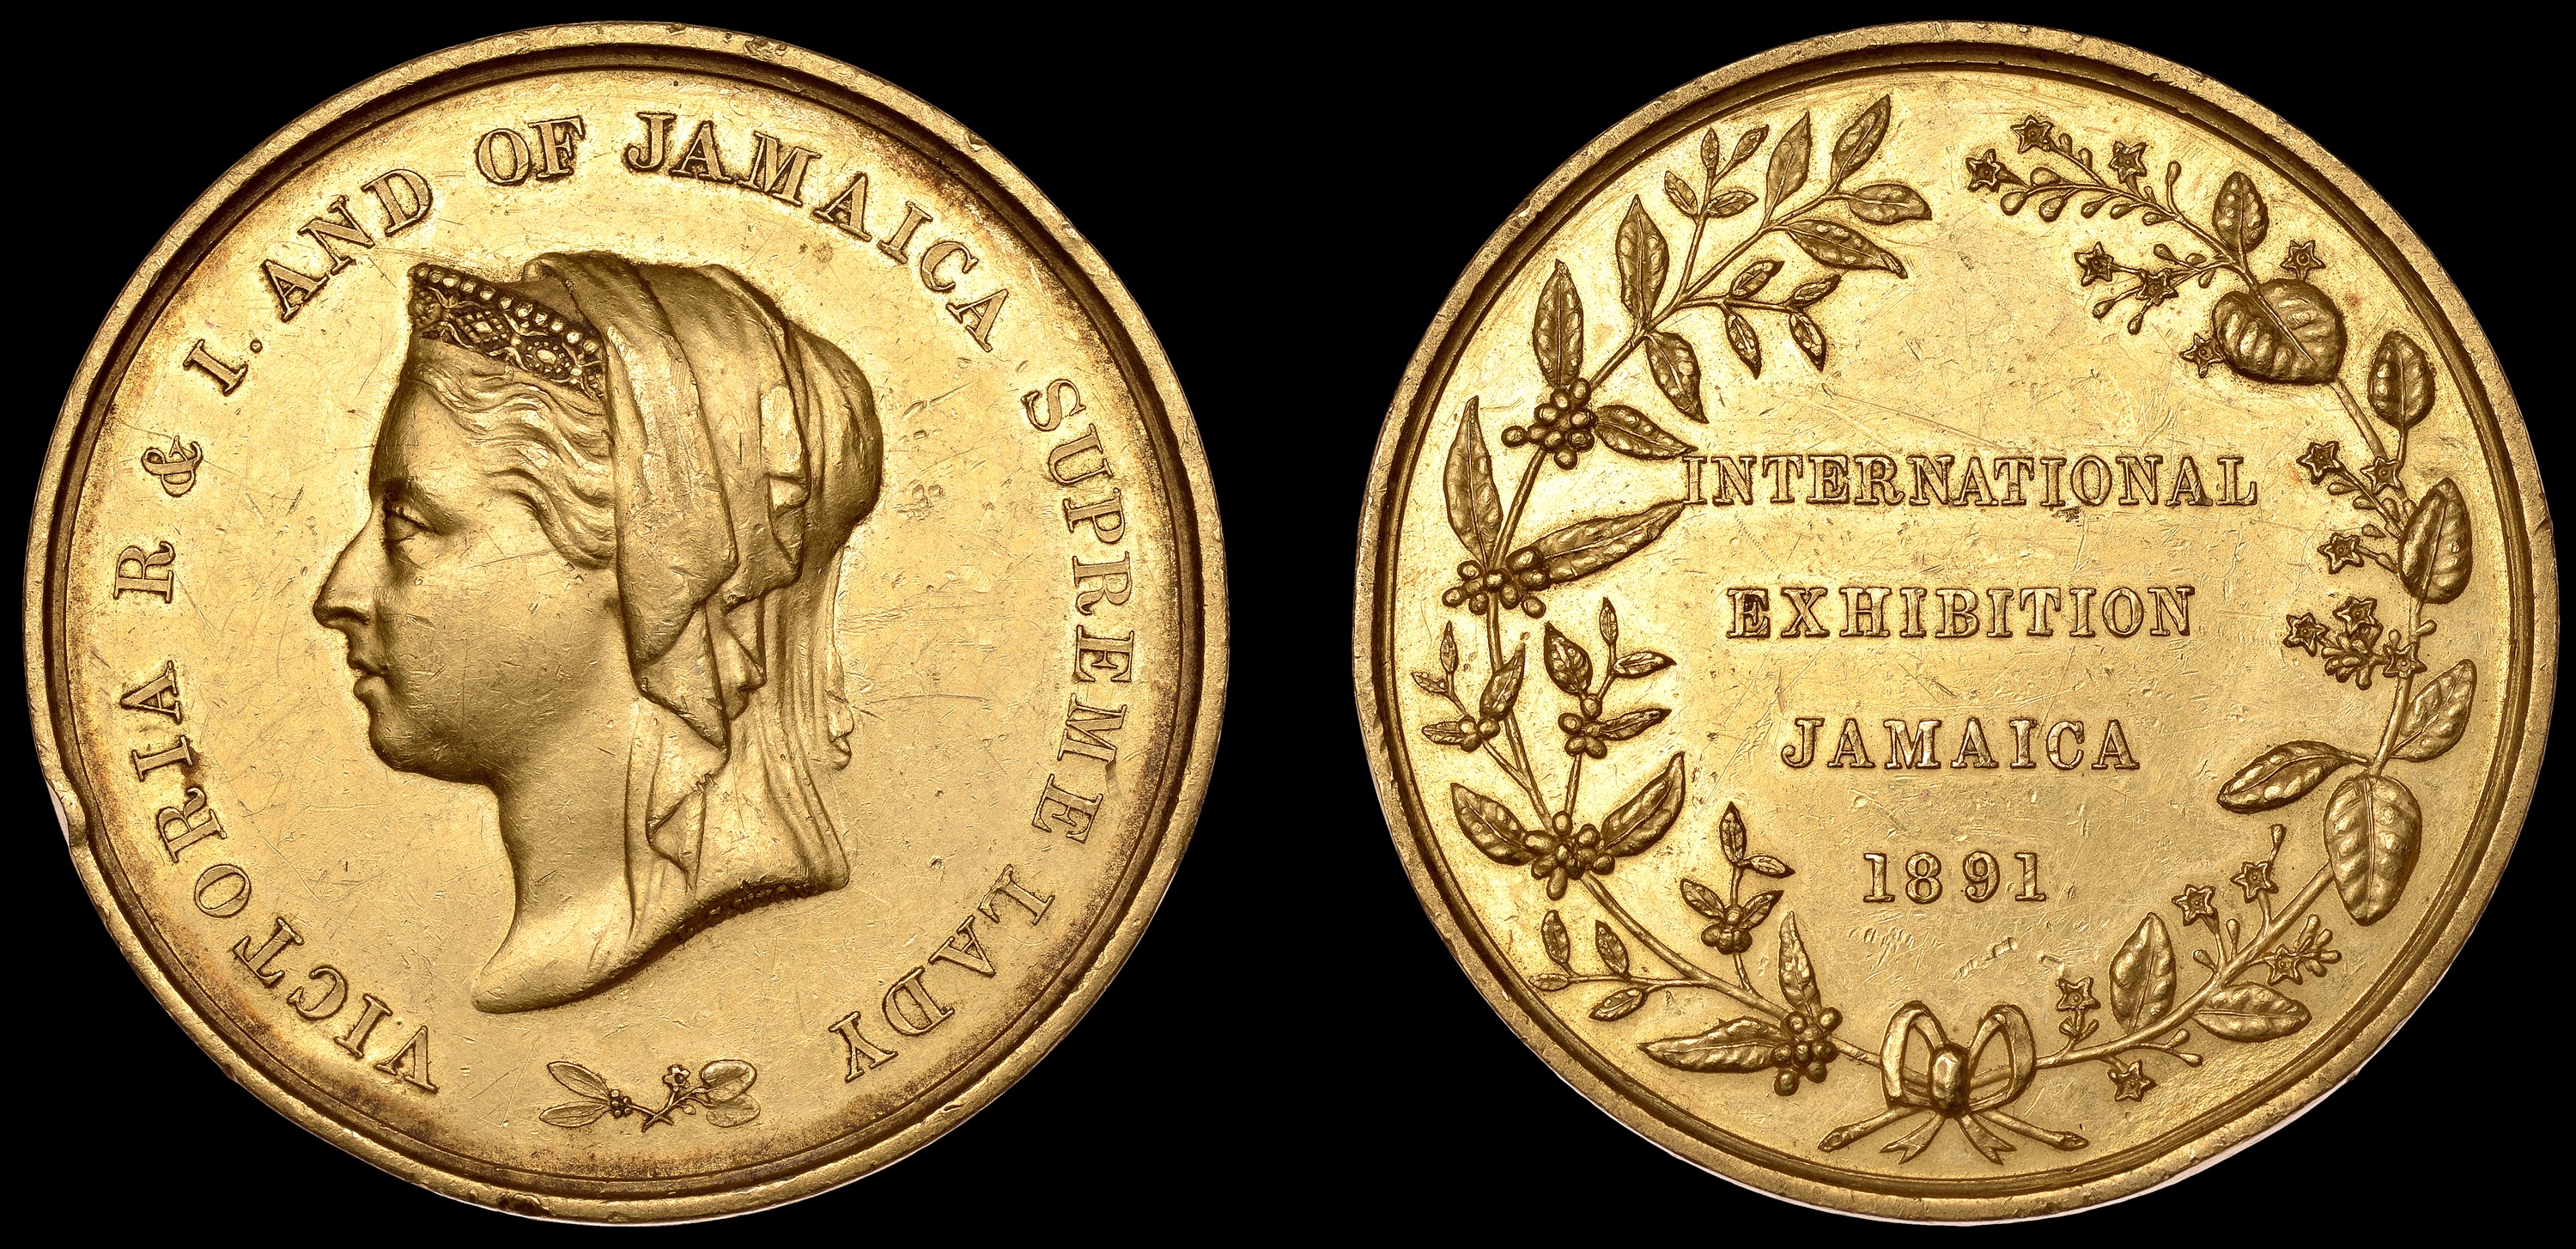 Lot 3000 - WORLD HISTORICAL MEDALS FROM VARIOUS PROPERTIES